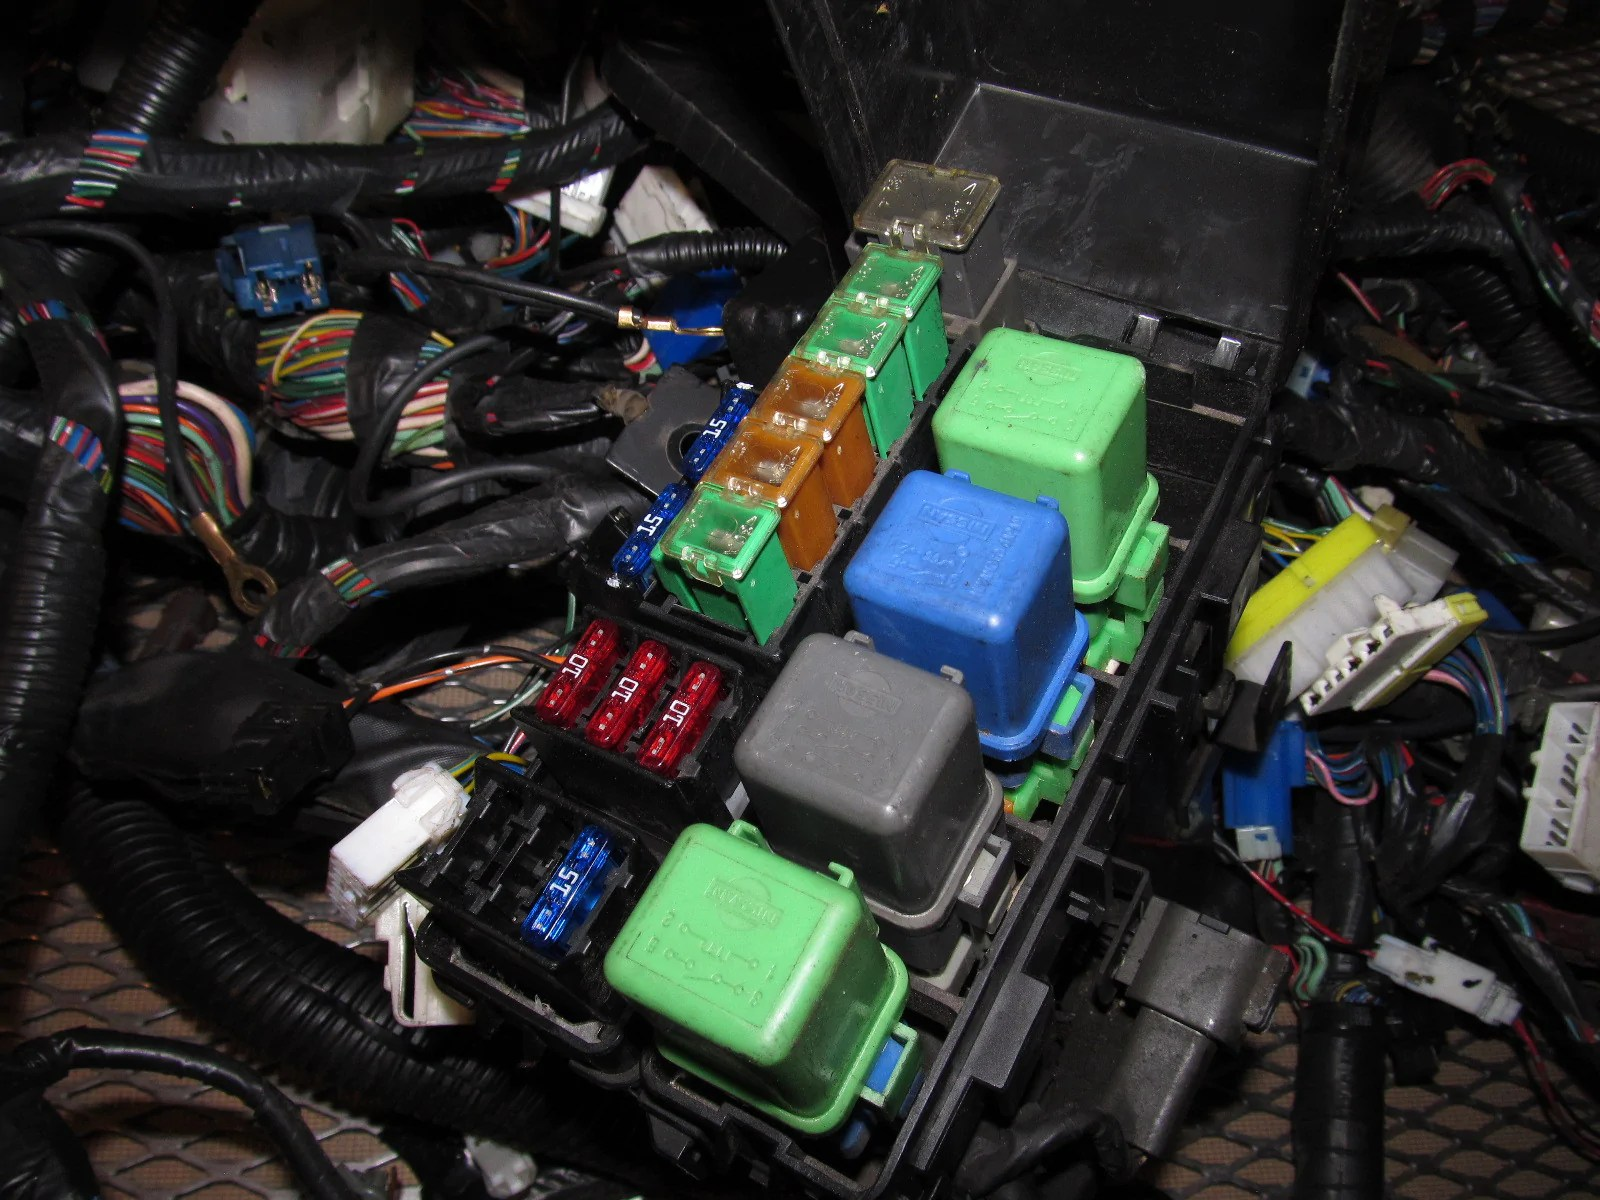 hight resolution of 240sx battery fuse box wiring diagram detailed 95 98 240sx fuse box interior 240sx fuse box decoder